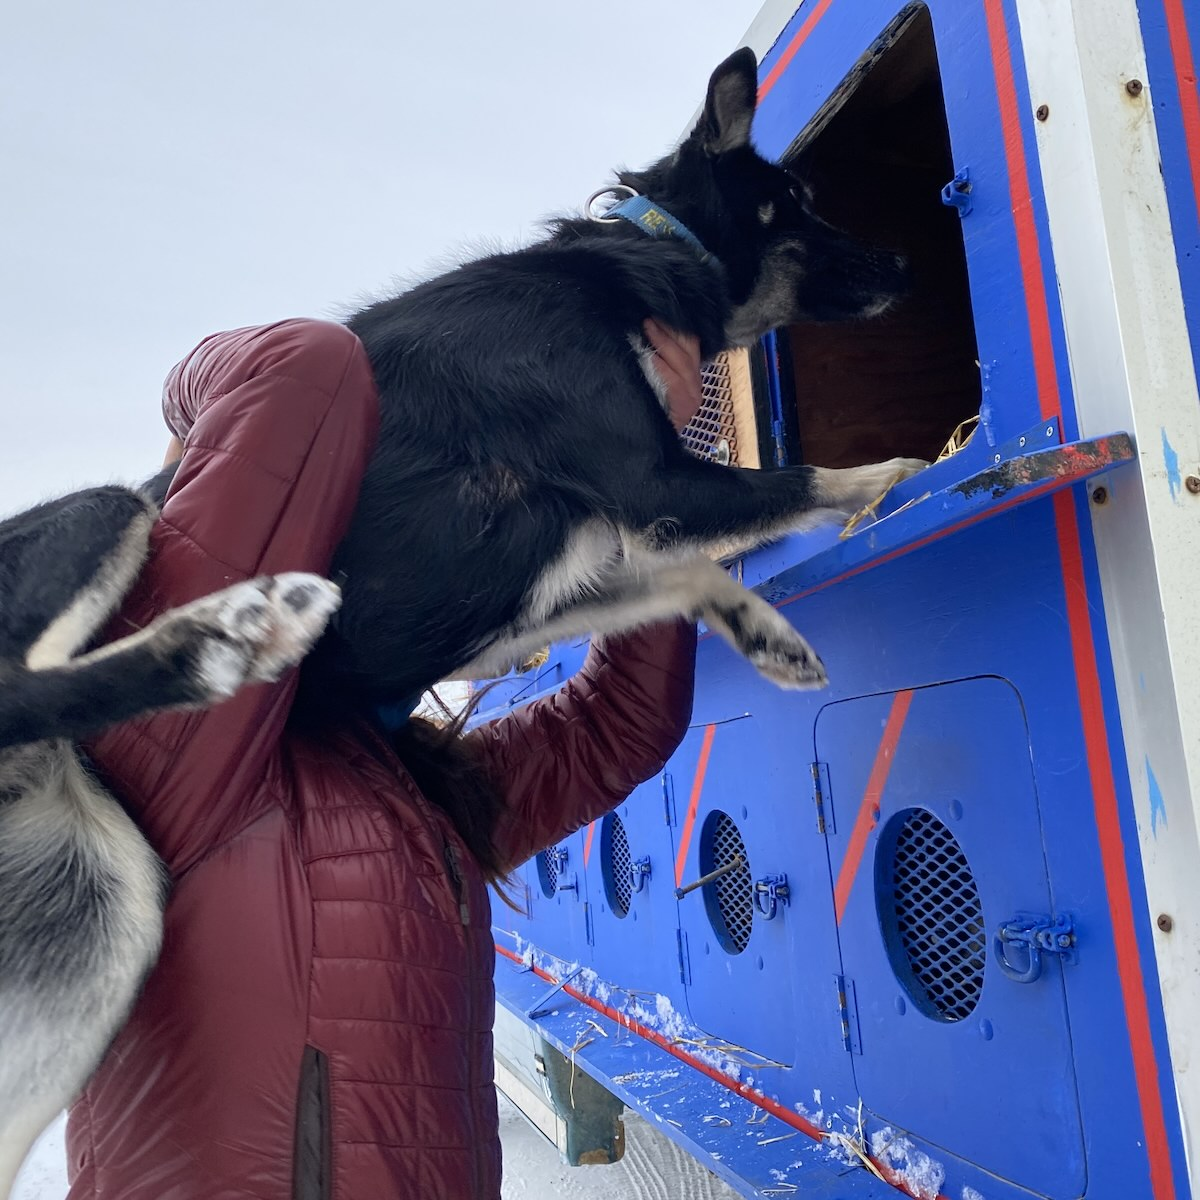 Sam the handler hoists a black sled dog into the upper level of a double deck wooden box with kennels for dogs to ride in